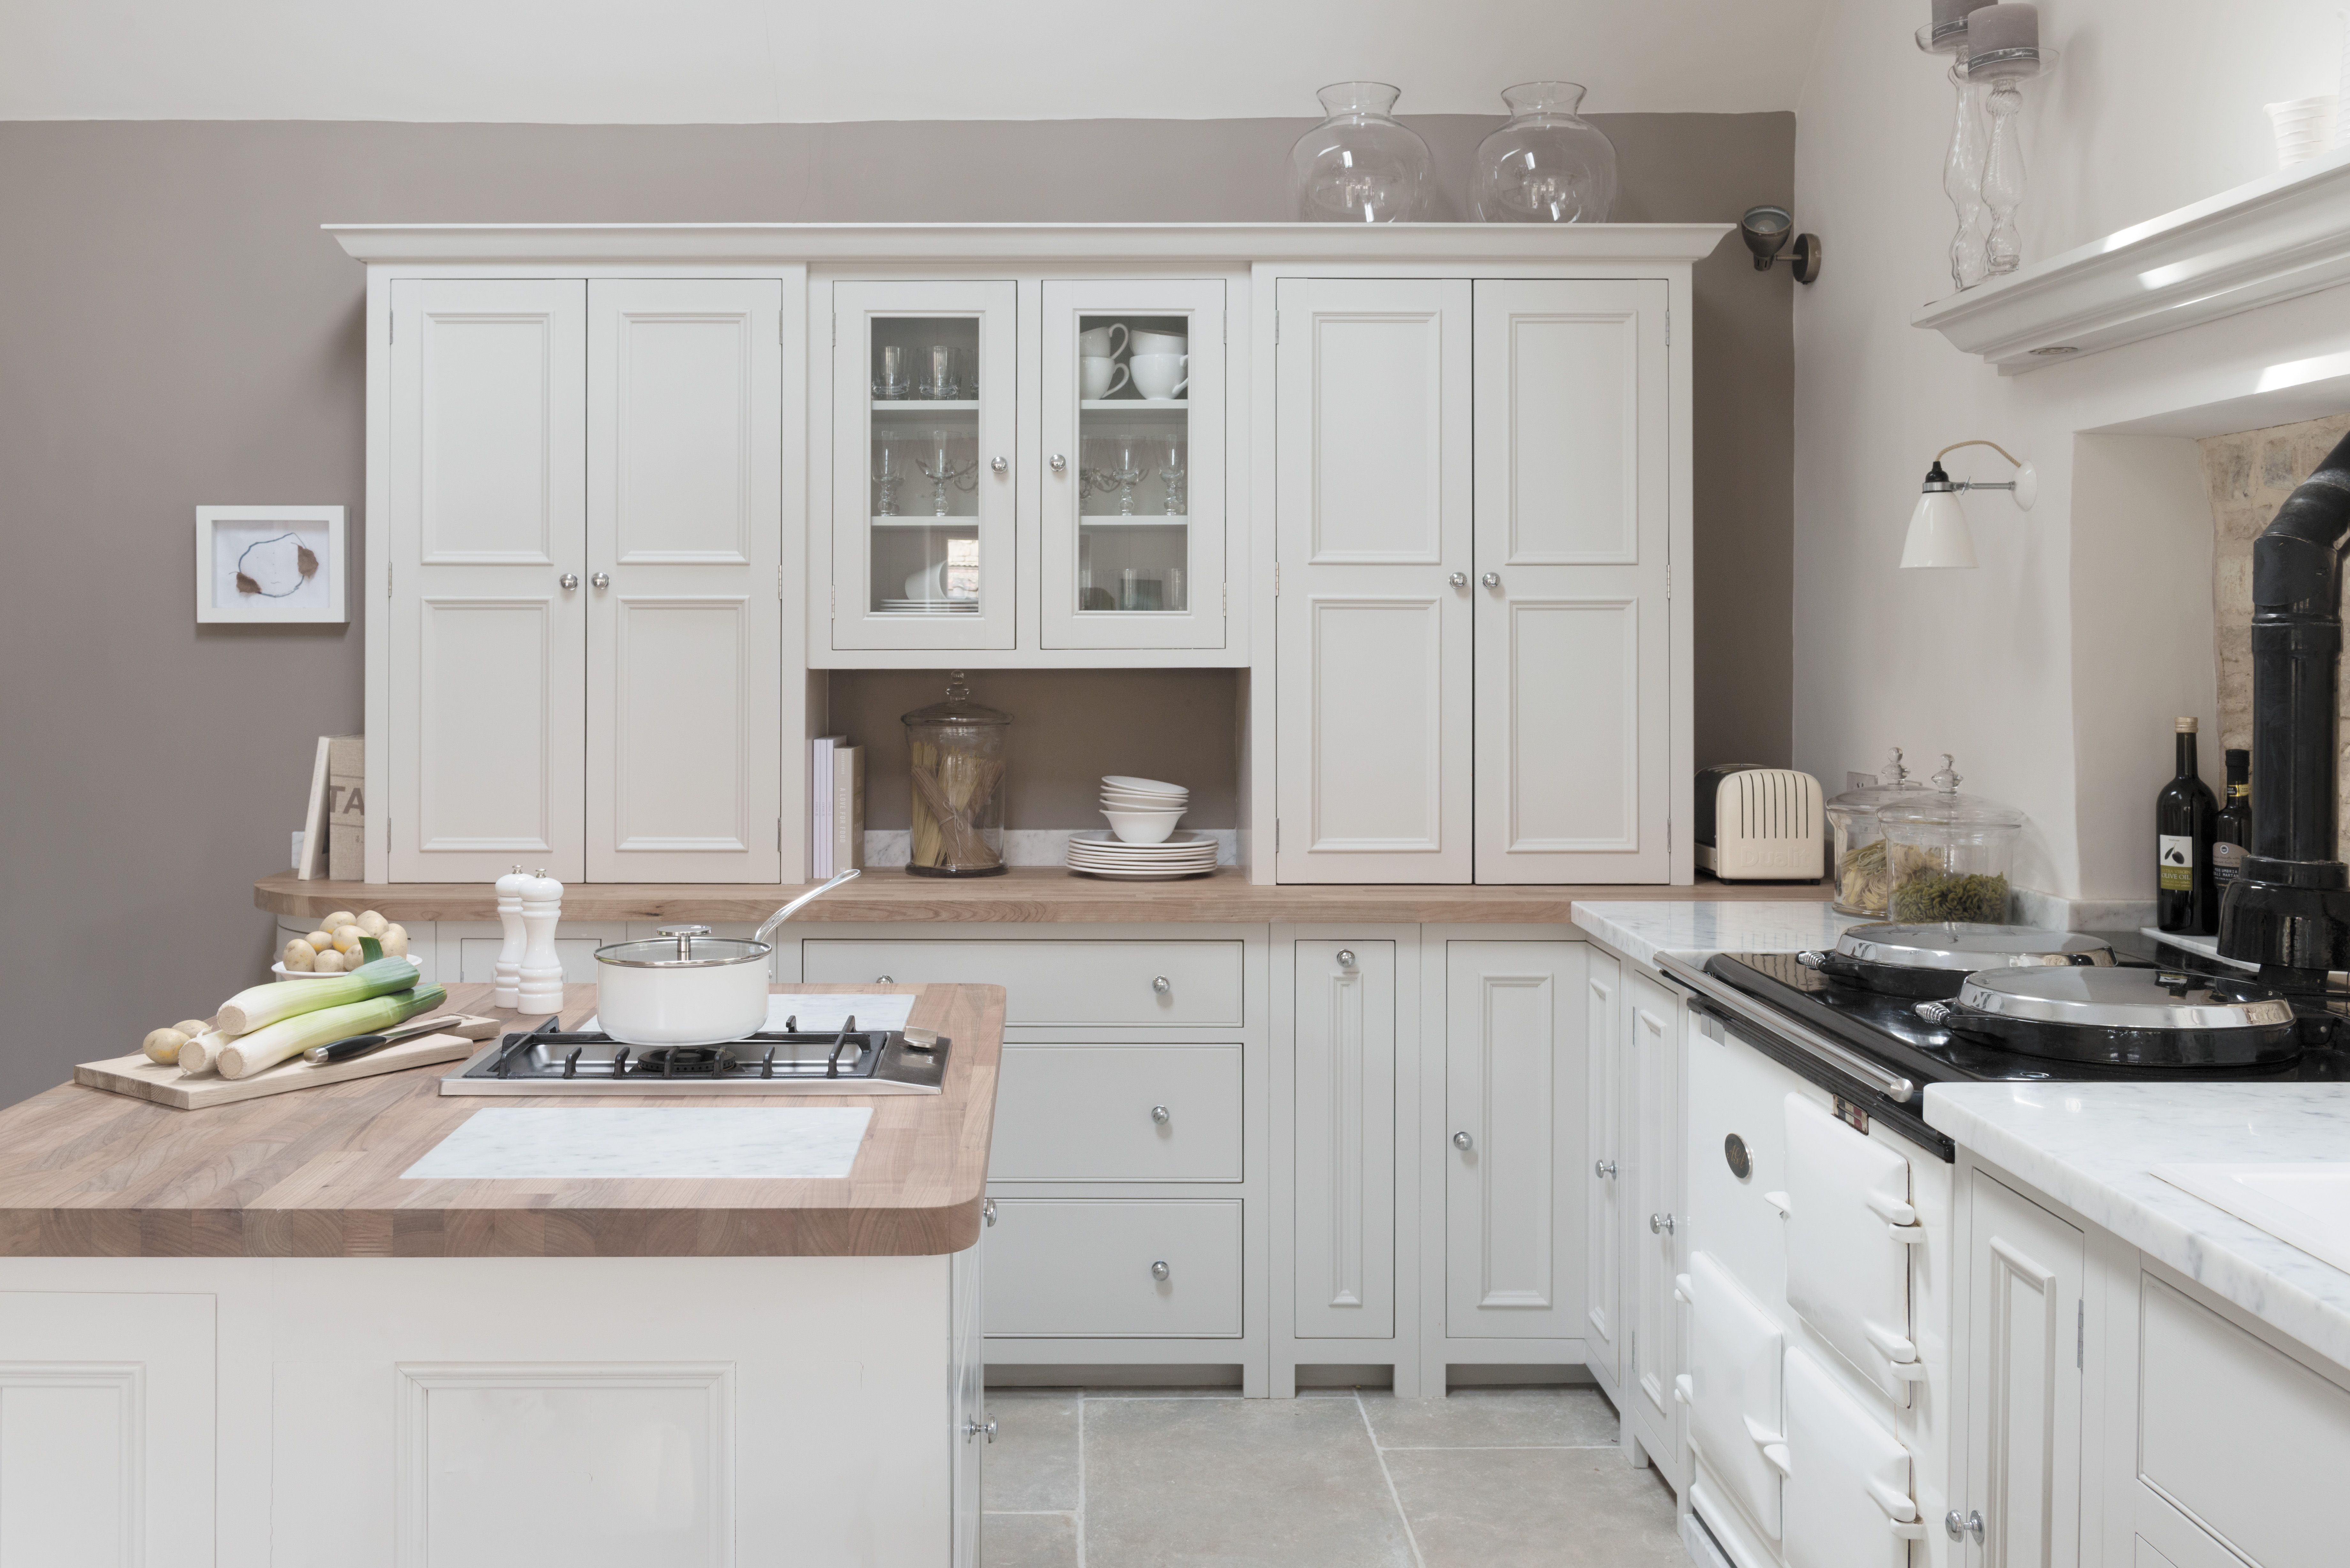 Cuisine Neptune Classic Neptune Chichester Cabinetry Gives A Nod To The Building S